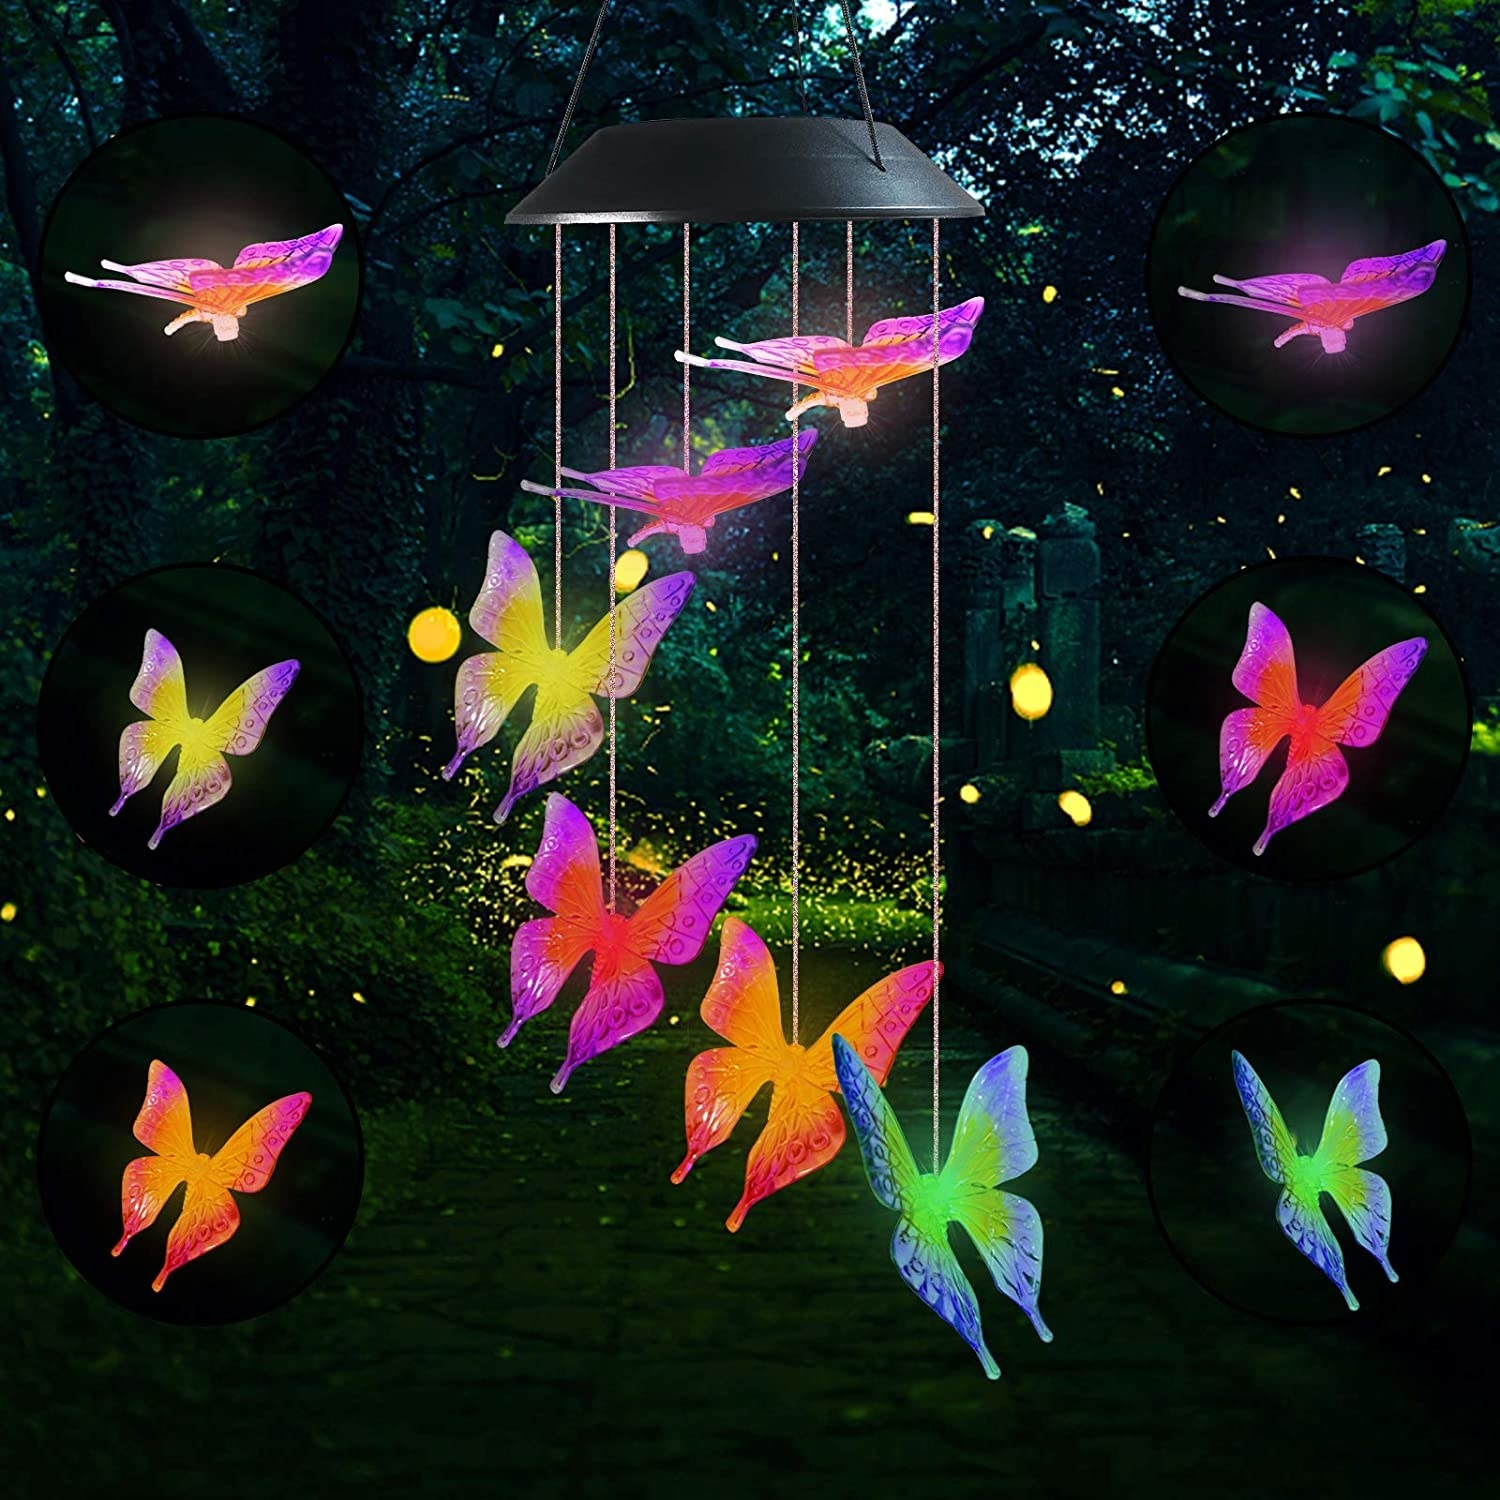 Six LED butterflies in different bright colors handing in a tiered circle from the base of a hanging wind chime